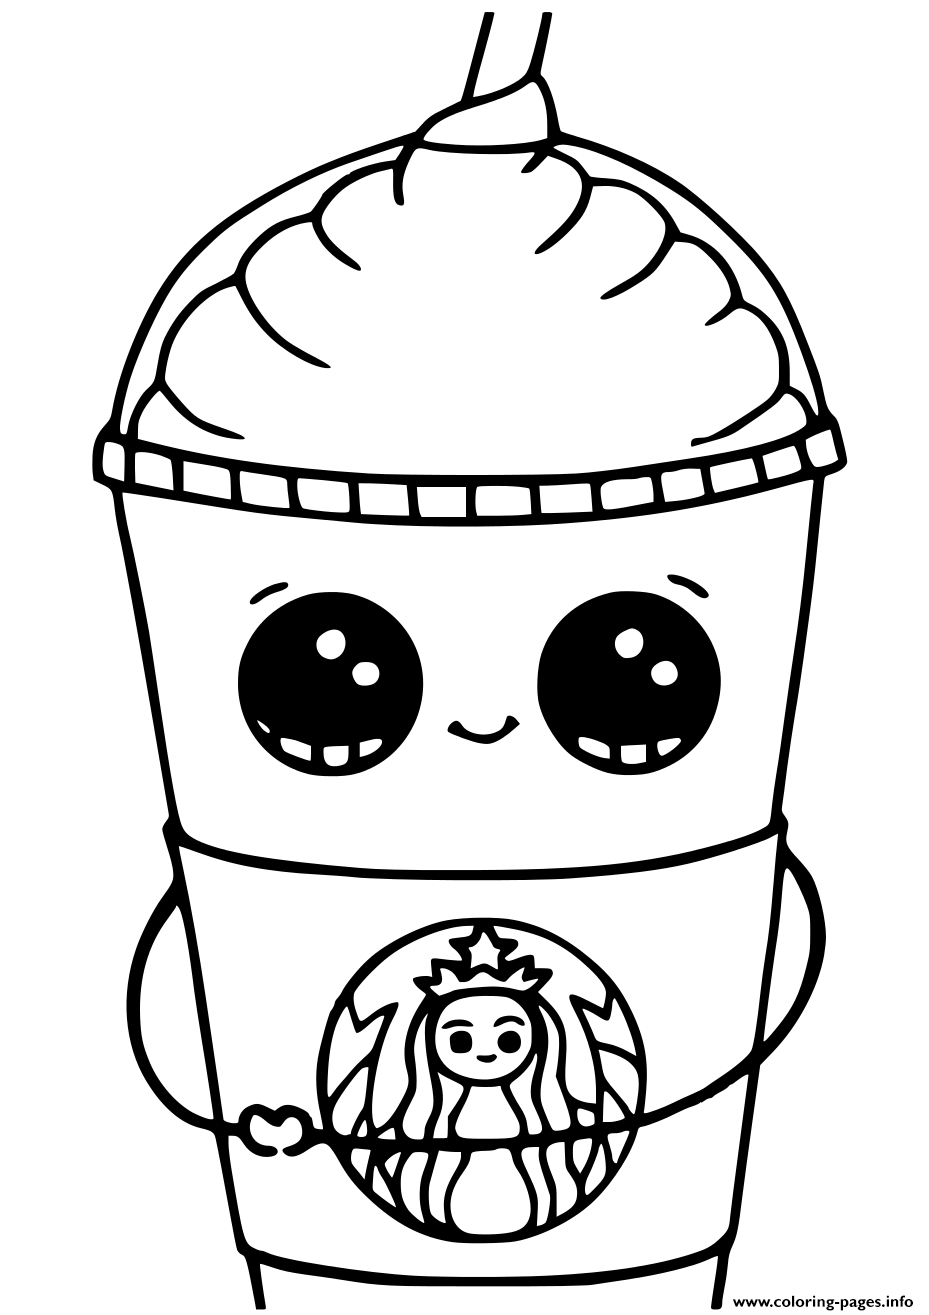 Starbucks Cups Kawaii coloring pages